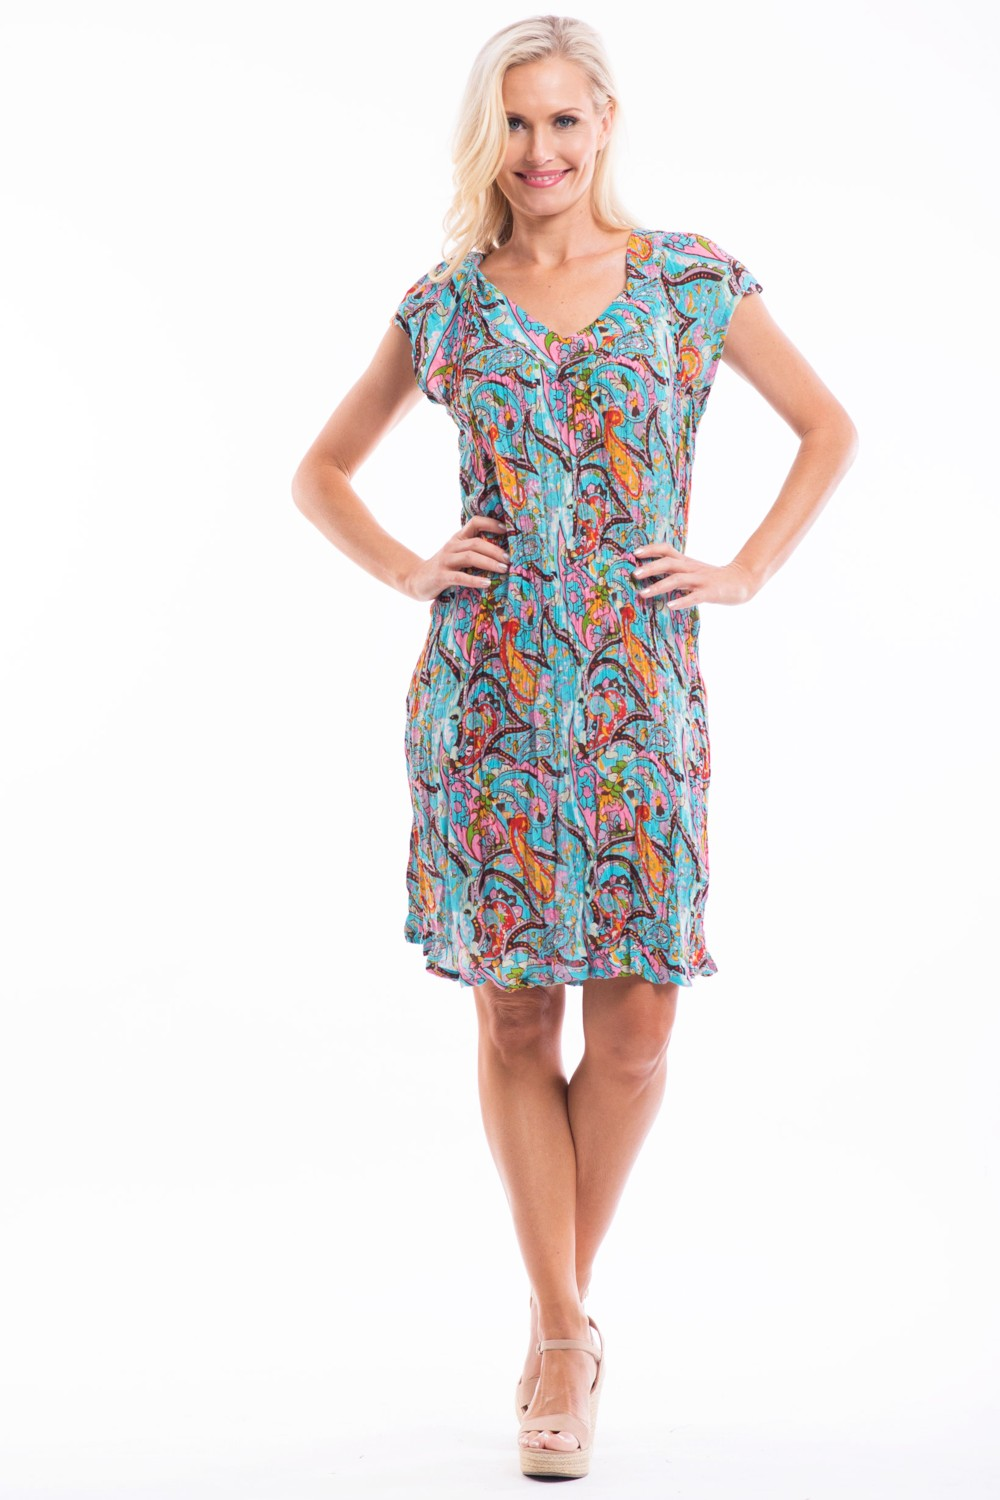 Aqua Paisley Crinkle Tunic Dress | I Love Tunics | Tunic Tops | Tunic Dresses | Women's Tops | Plus Size Australia | Mature Fashion